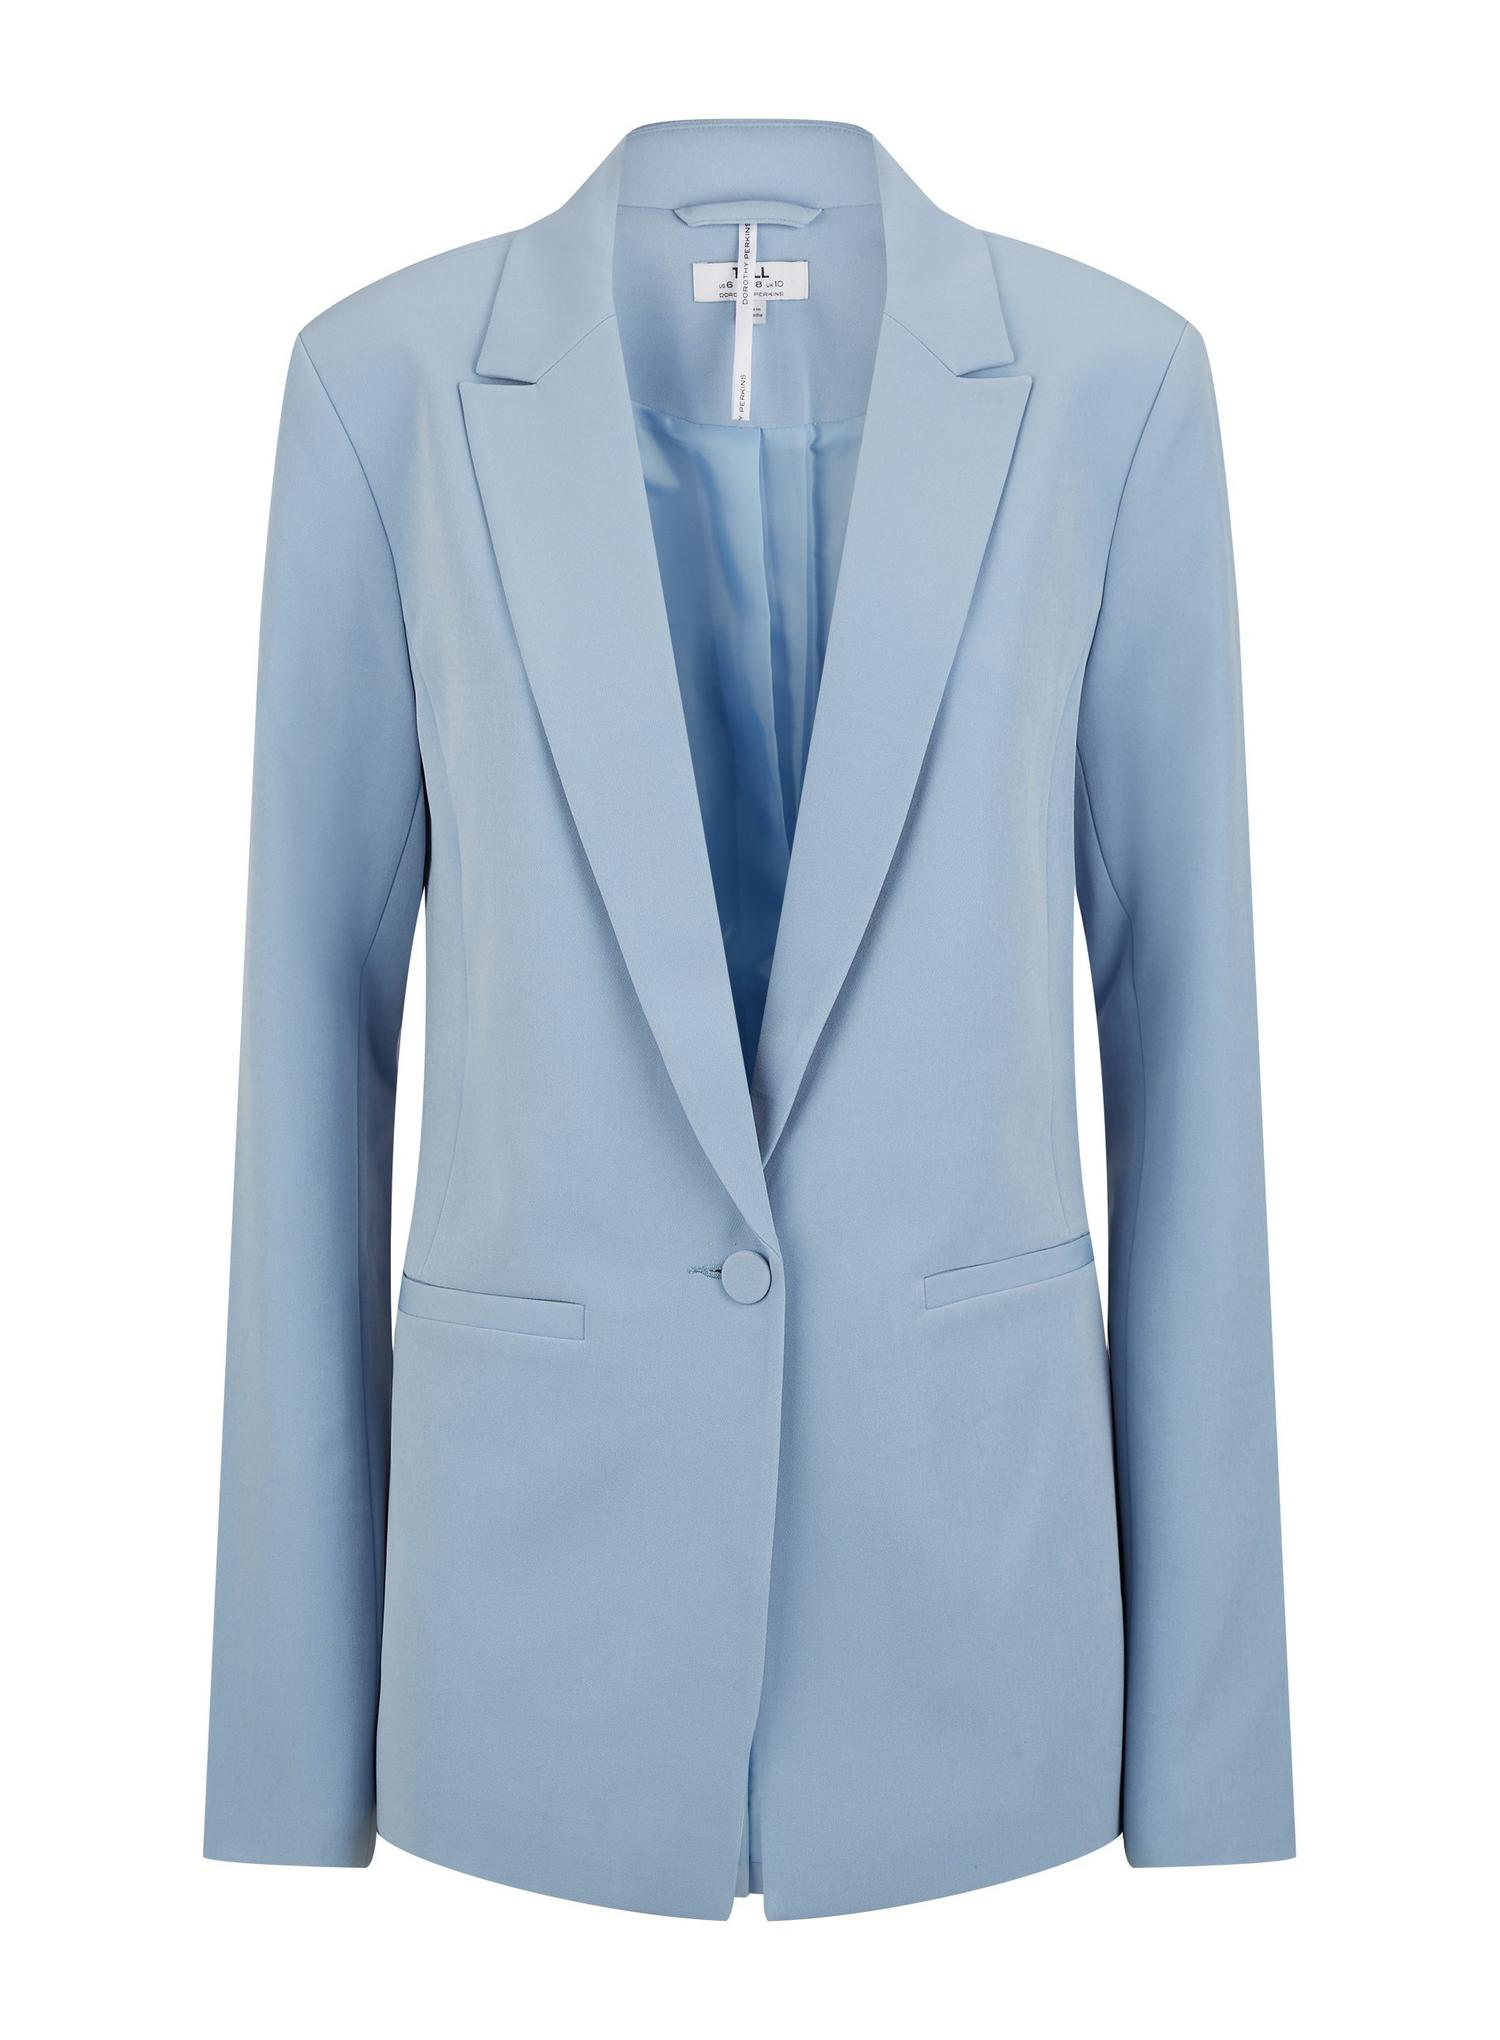 106 Tall Blue Blazer image number 2